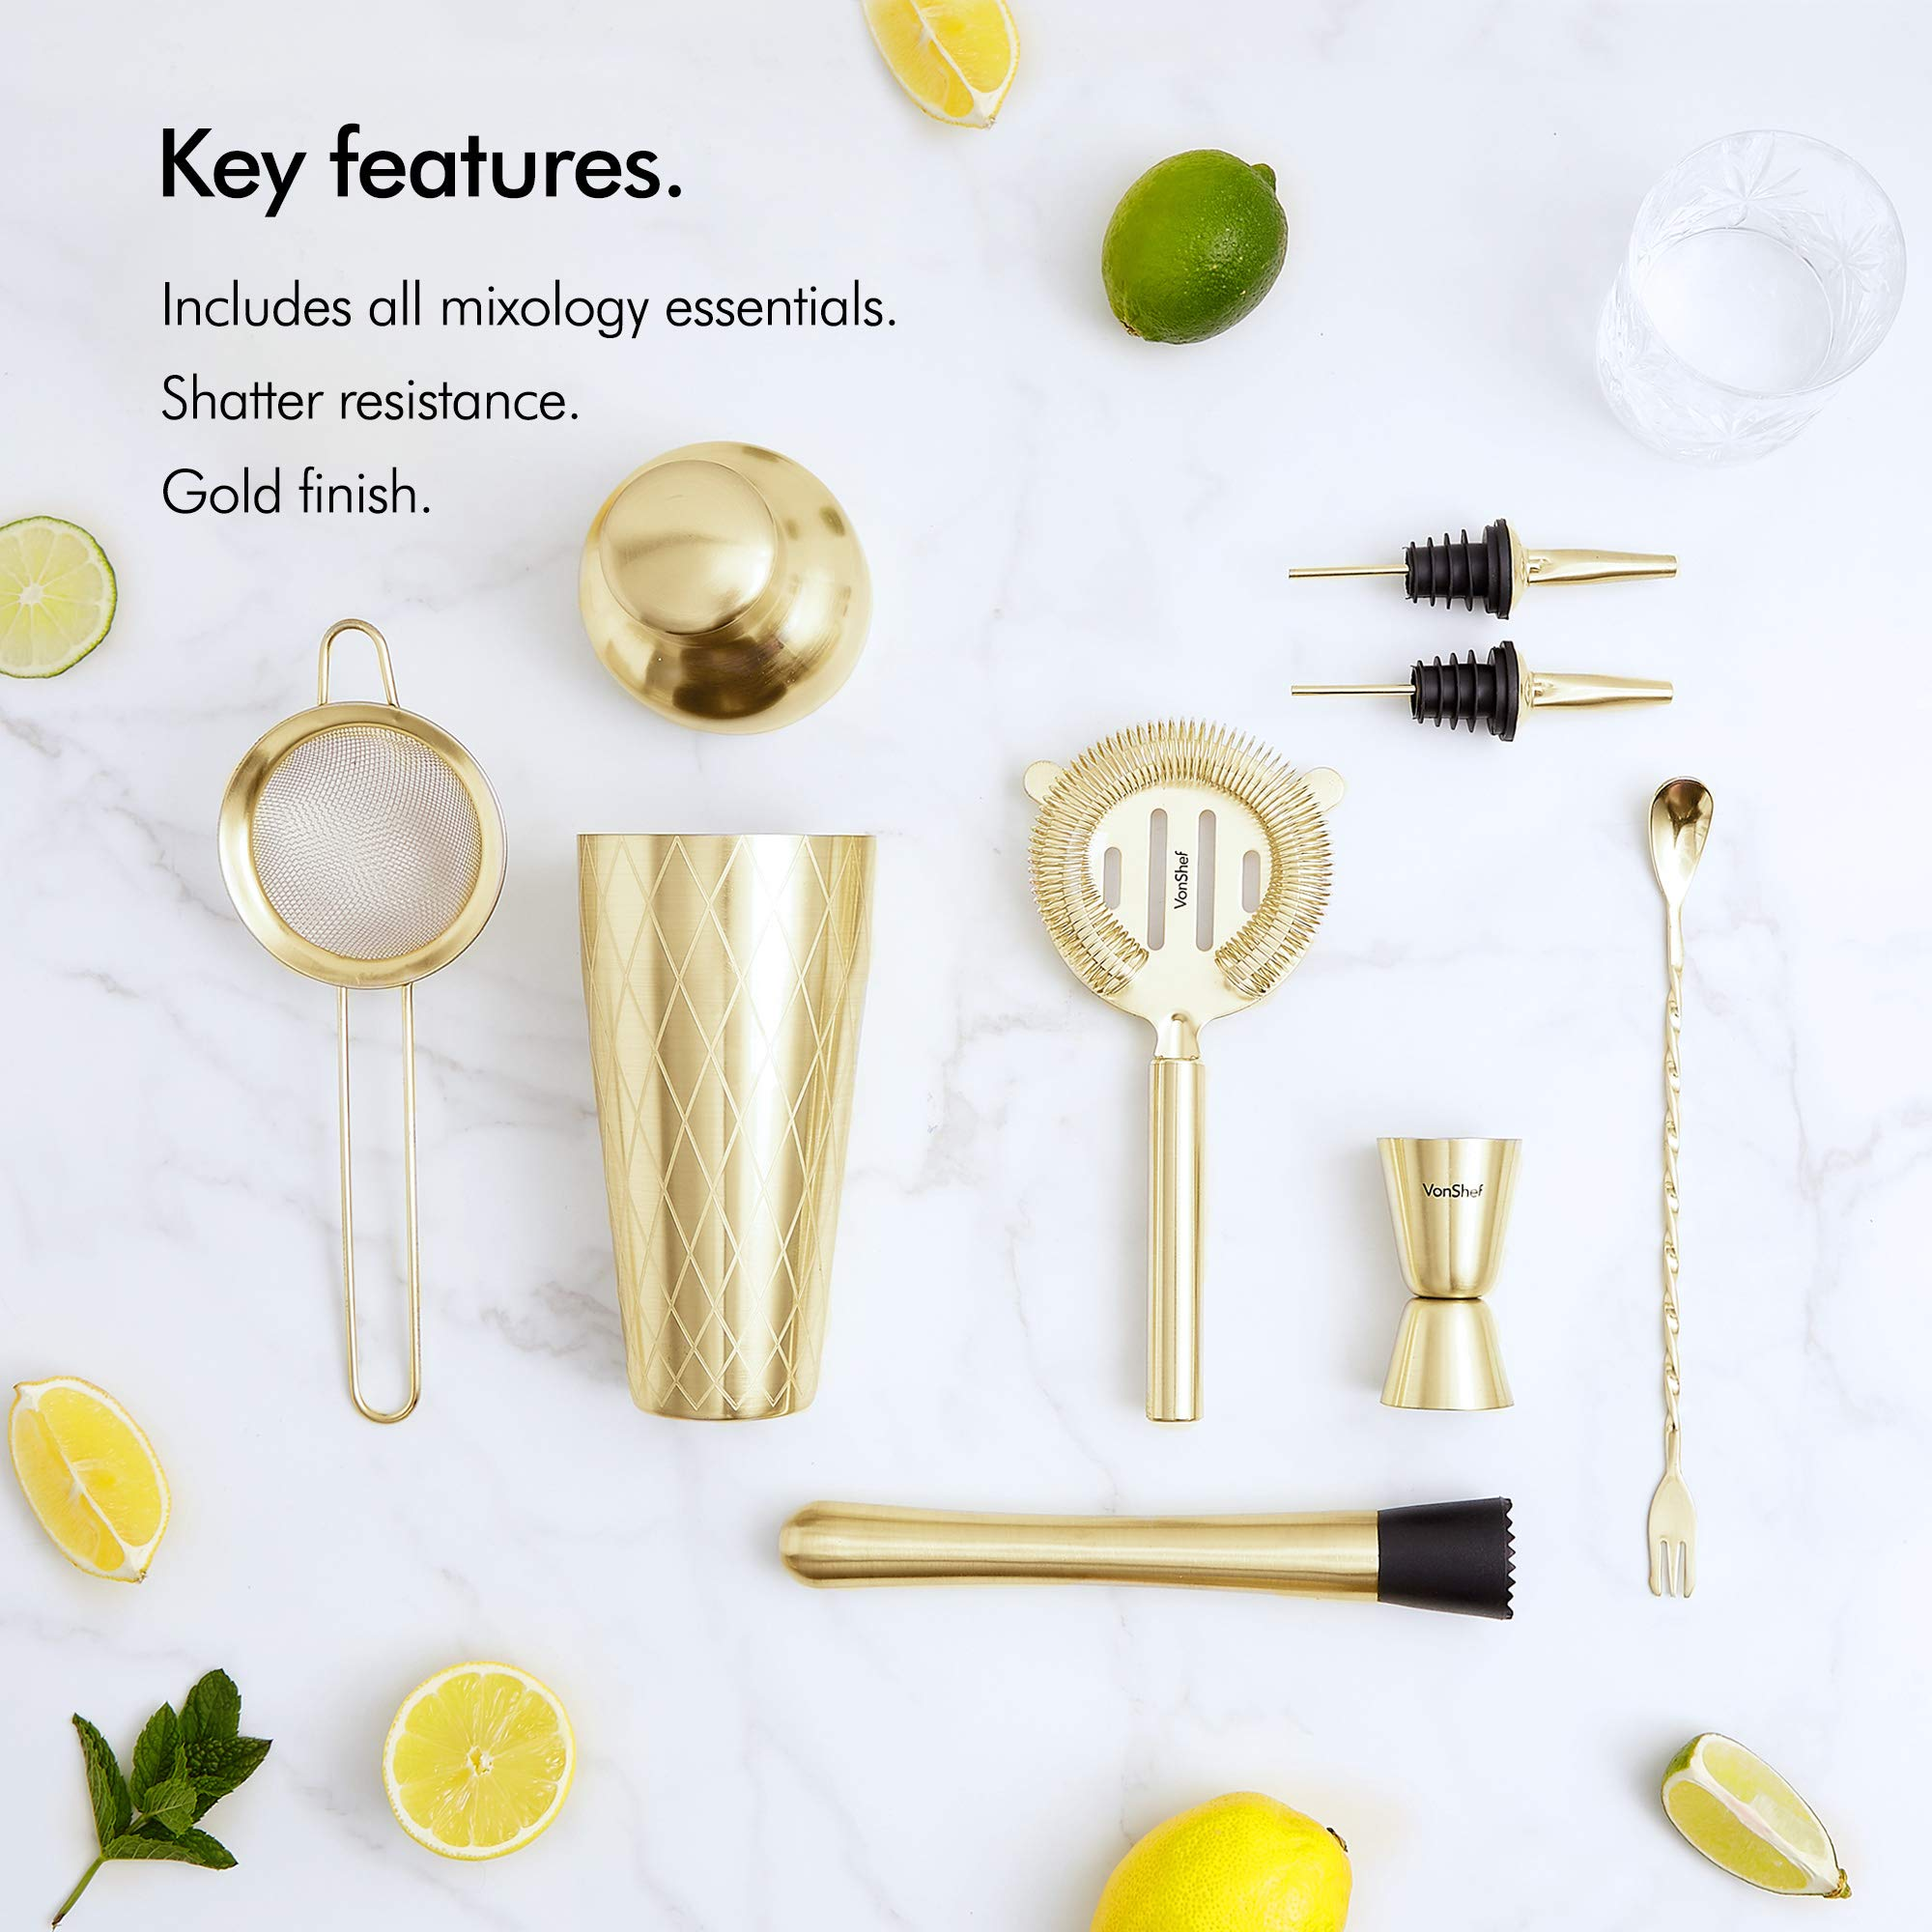 VonShef 9pc Gold Parisian Cocktail Shaker Bartender Set with Gift Box, Recipe Guide, Muddler, Jigger, Cocktail Strainers, Bar Spoon and Bottle Pourers by VonShef (Image #2)